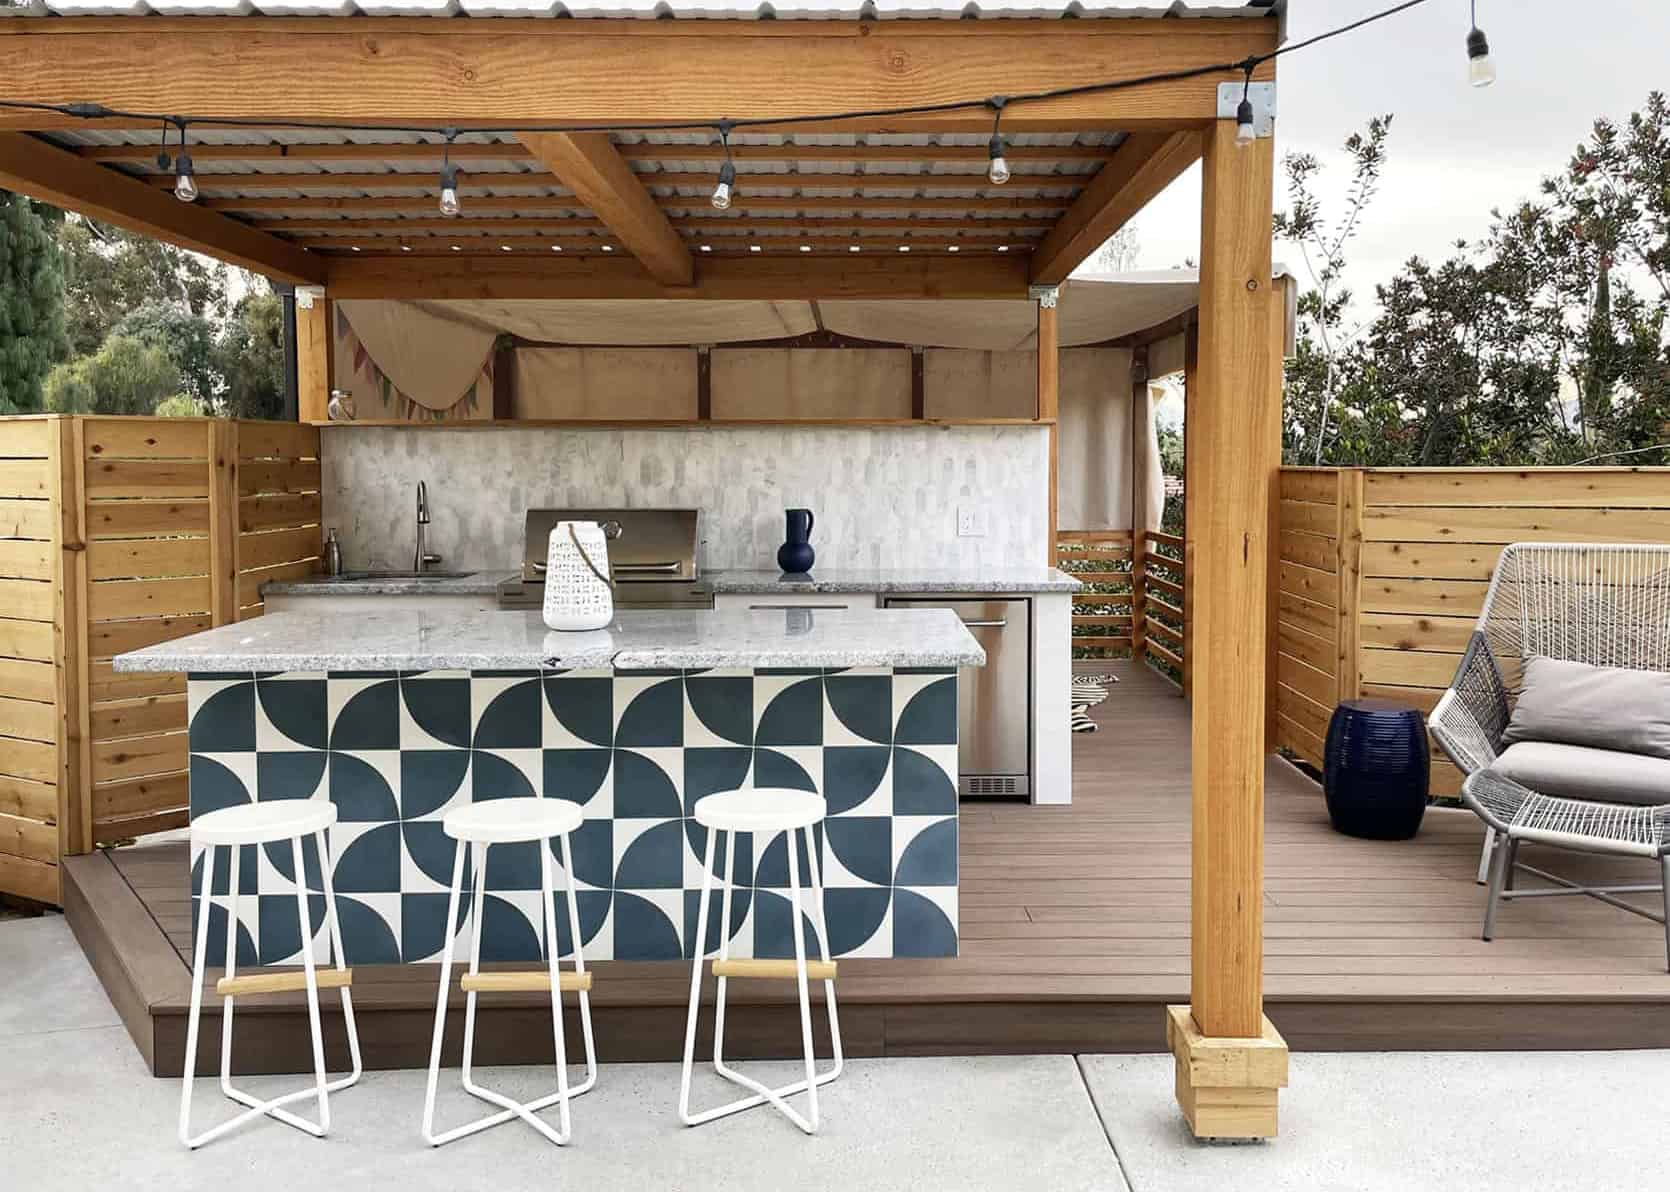 How To Build An Outdoor Kitchen: The 3 Essentials The EHD Team All Agreed On + Bonus Items If You Want To Up Your Outdoor Cooking Game